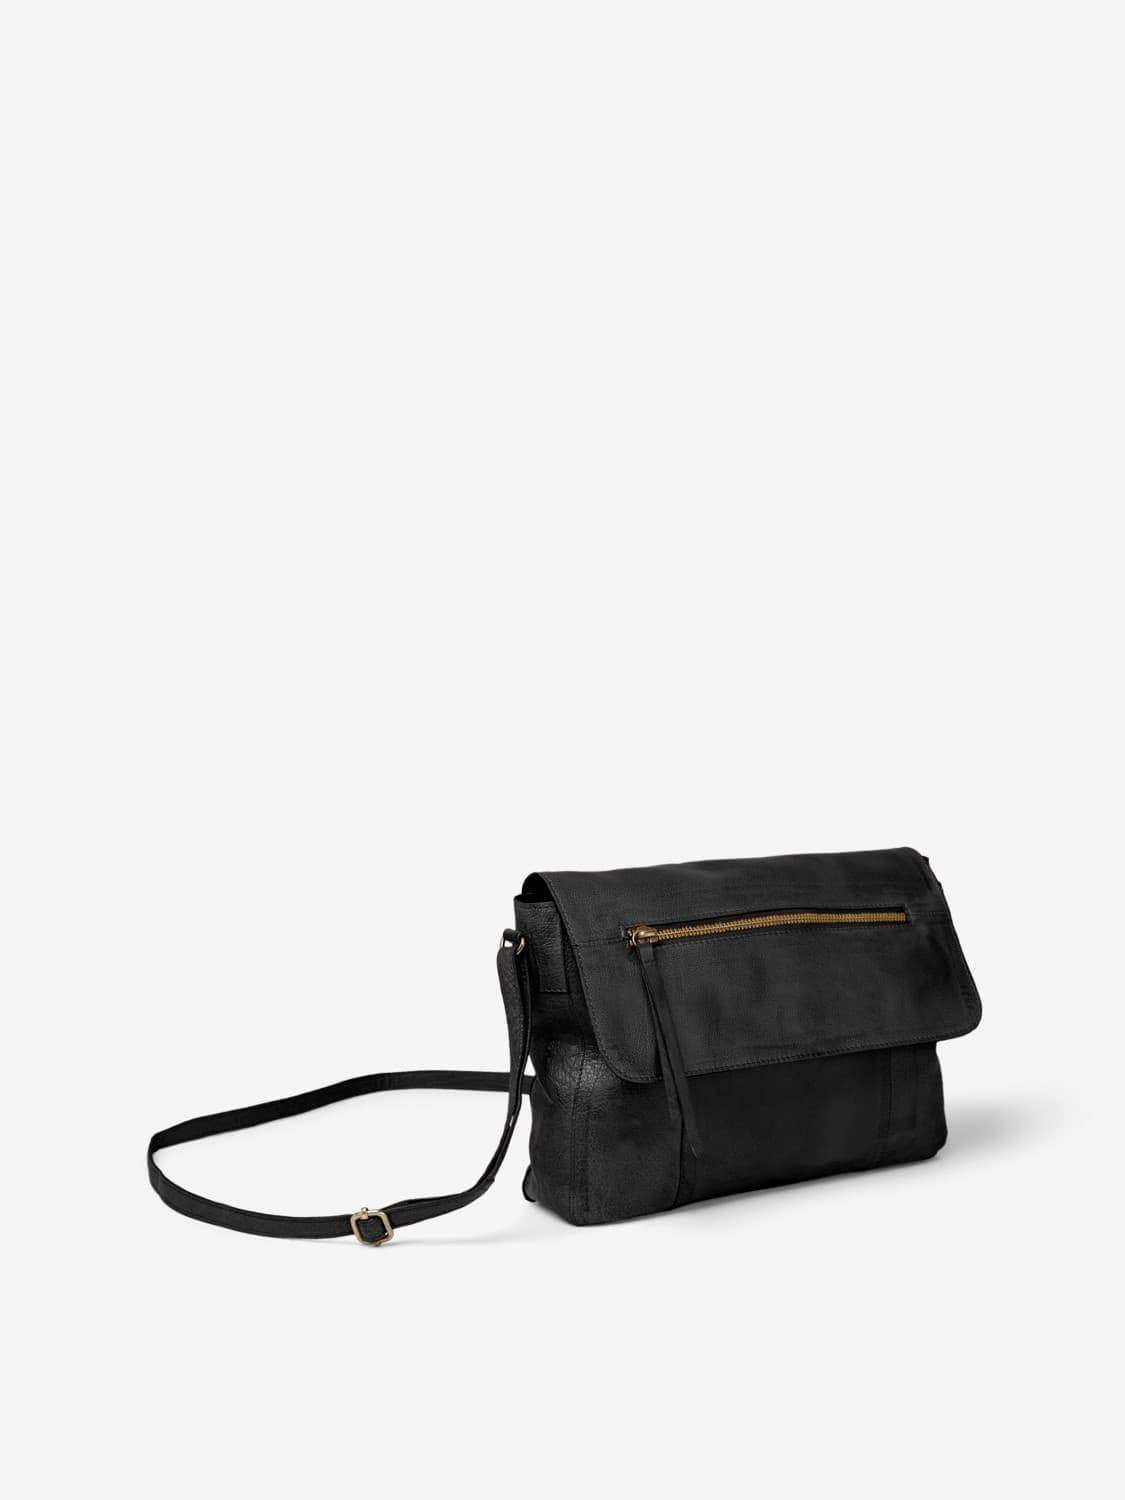 PCKIMONO LEATHER CROSS BODY NOOS (bruin of zwart) en andere Handtassen van Pieces